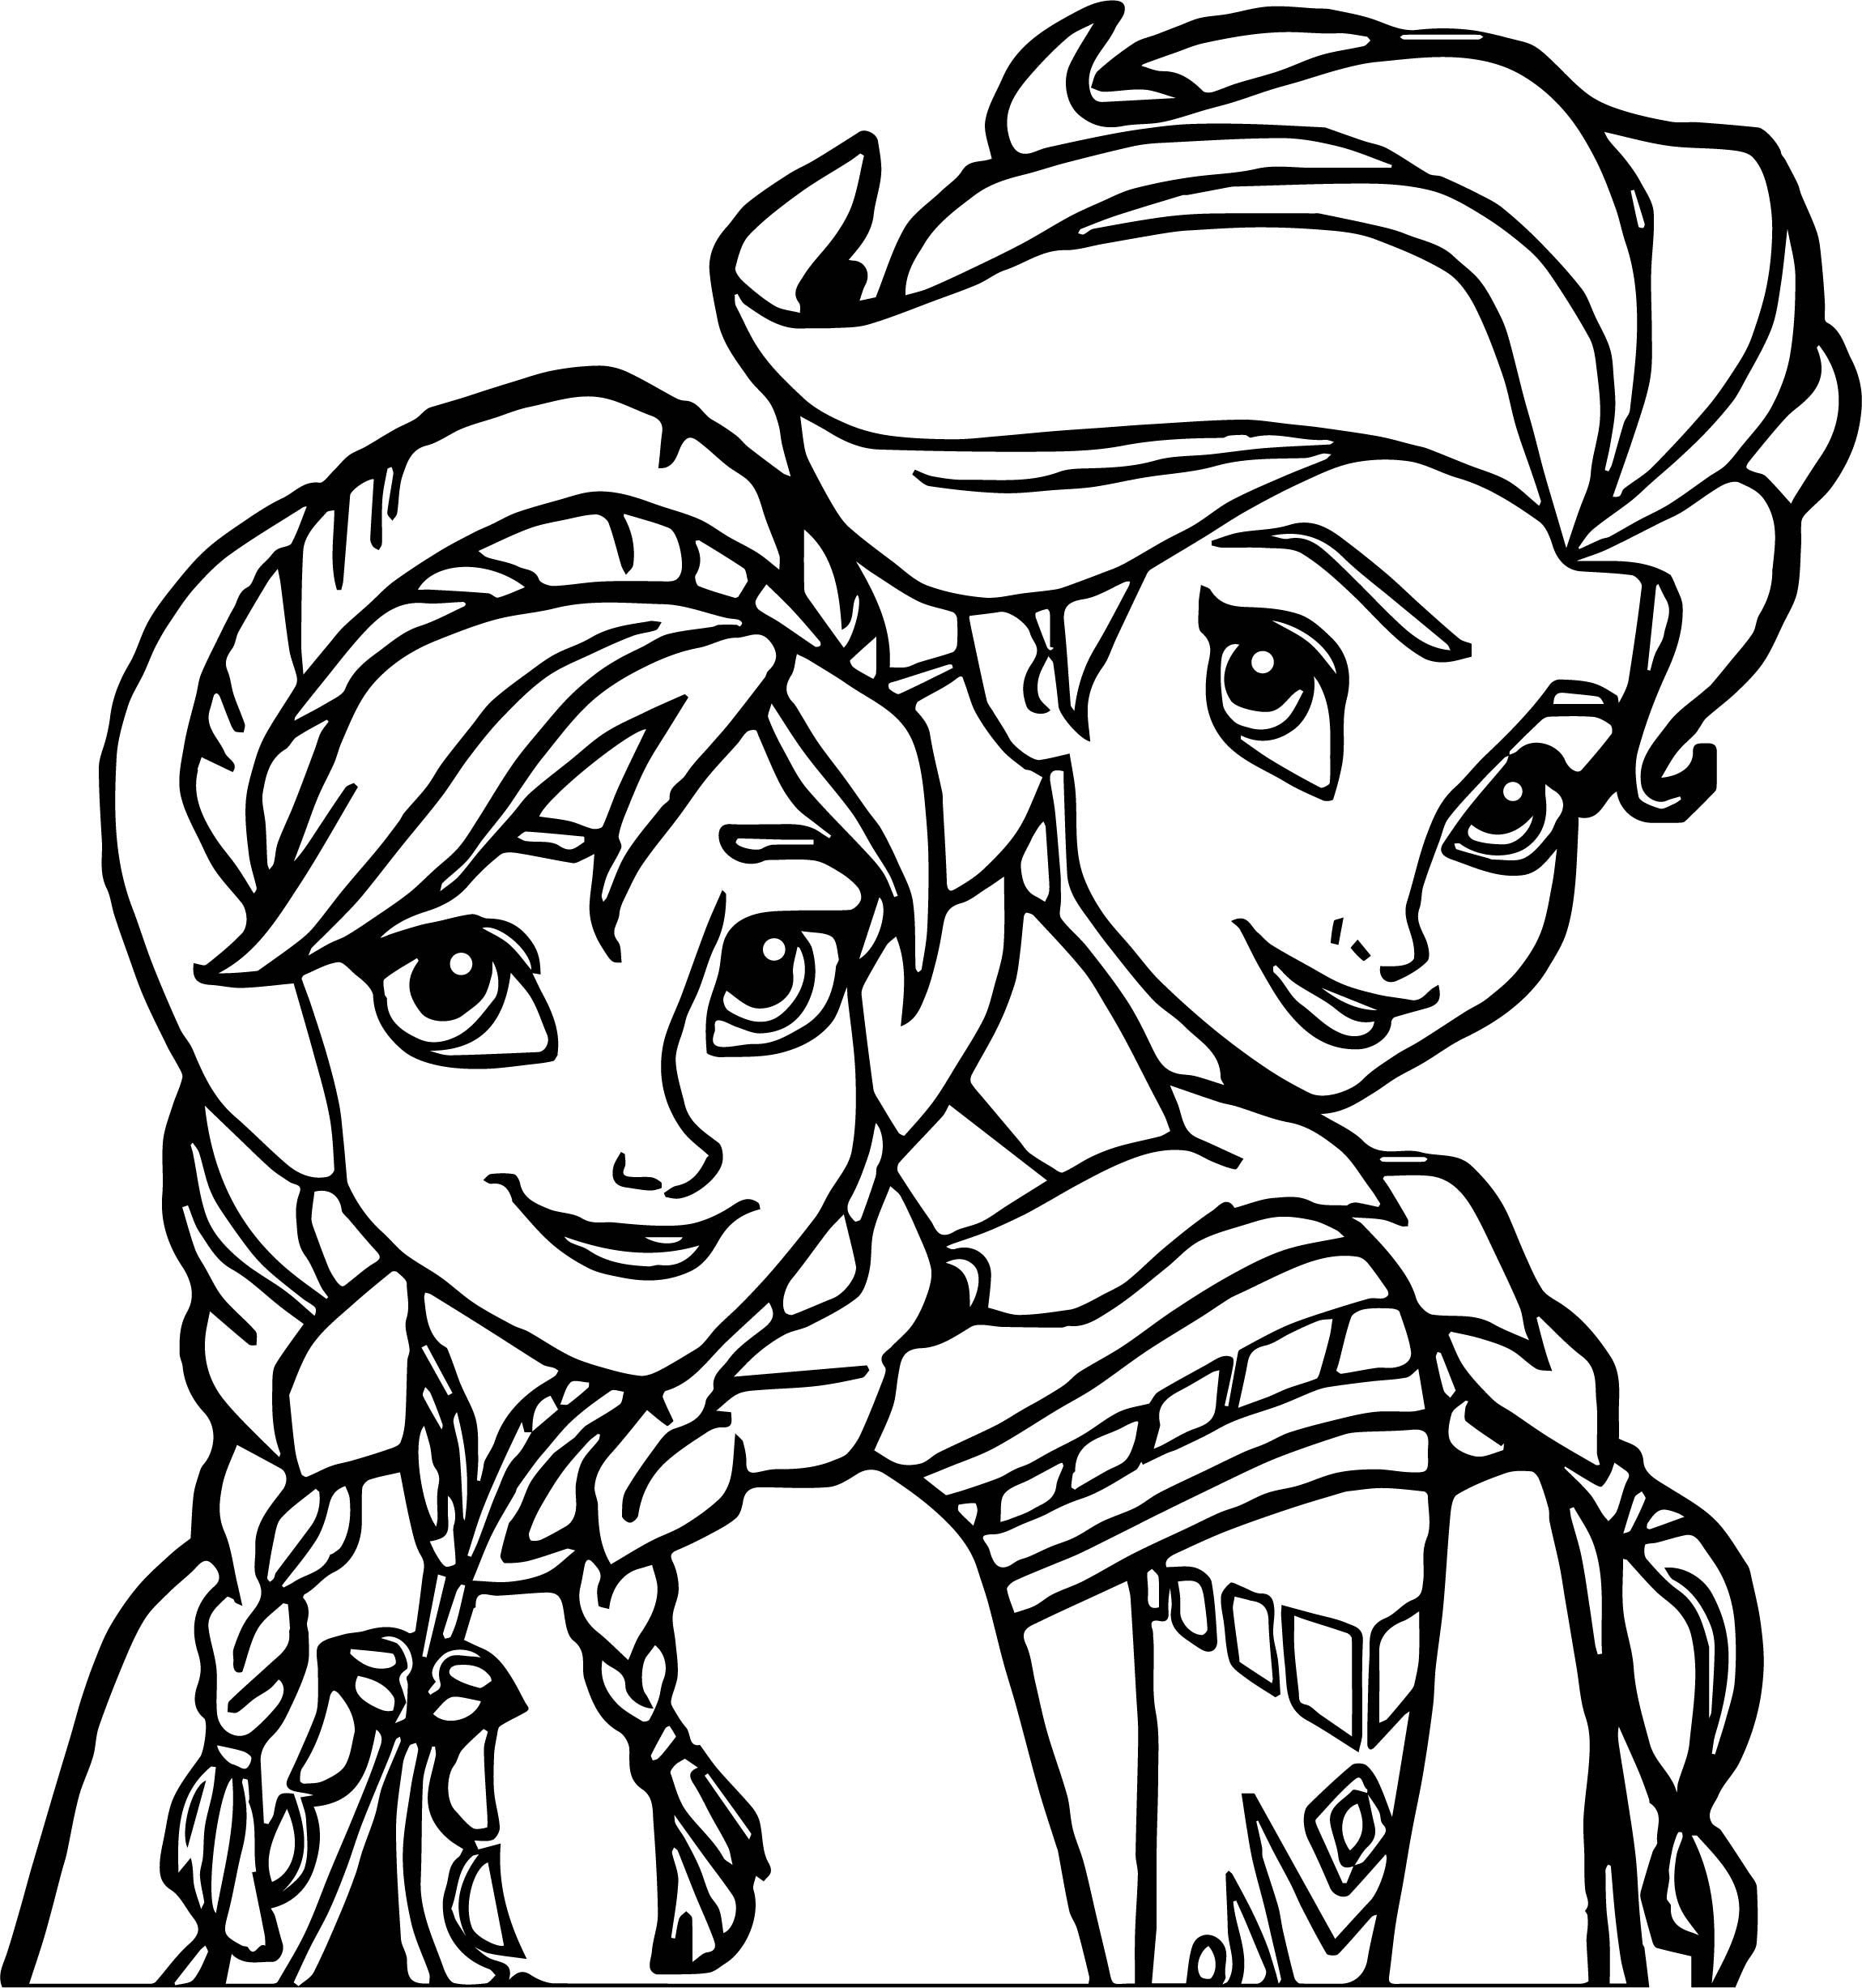 Elsa anna coloring page for Elsa frozen coloring pages